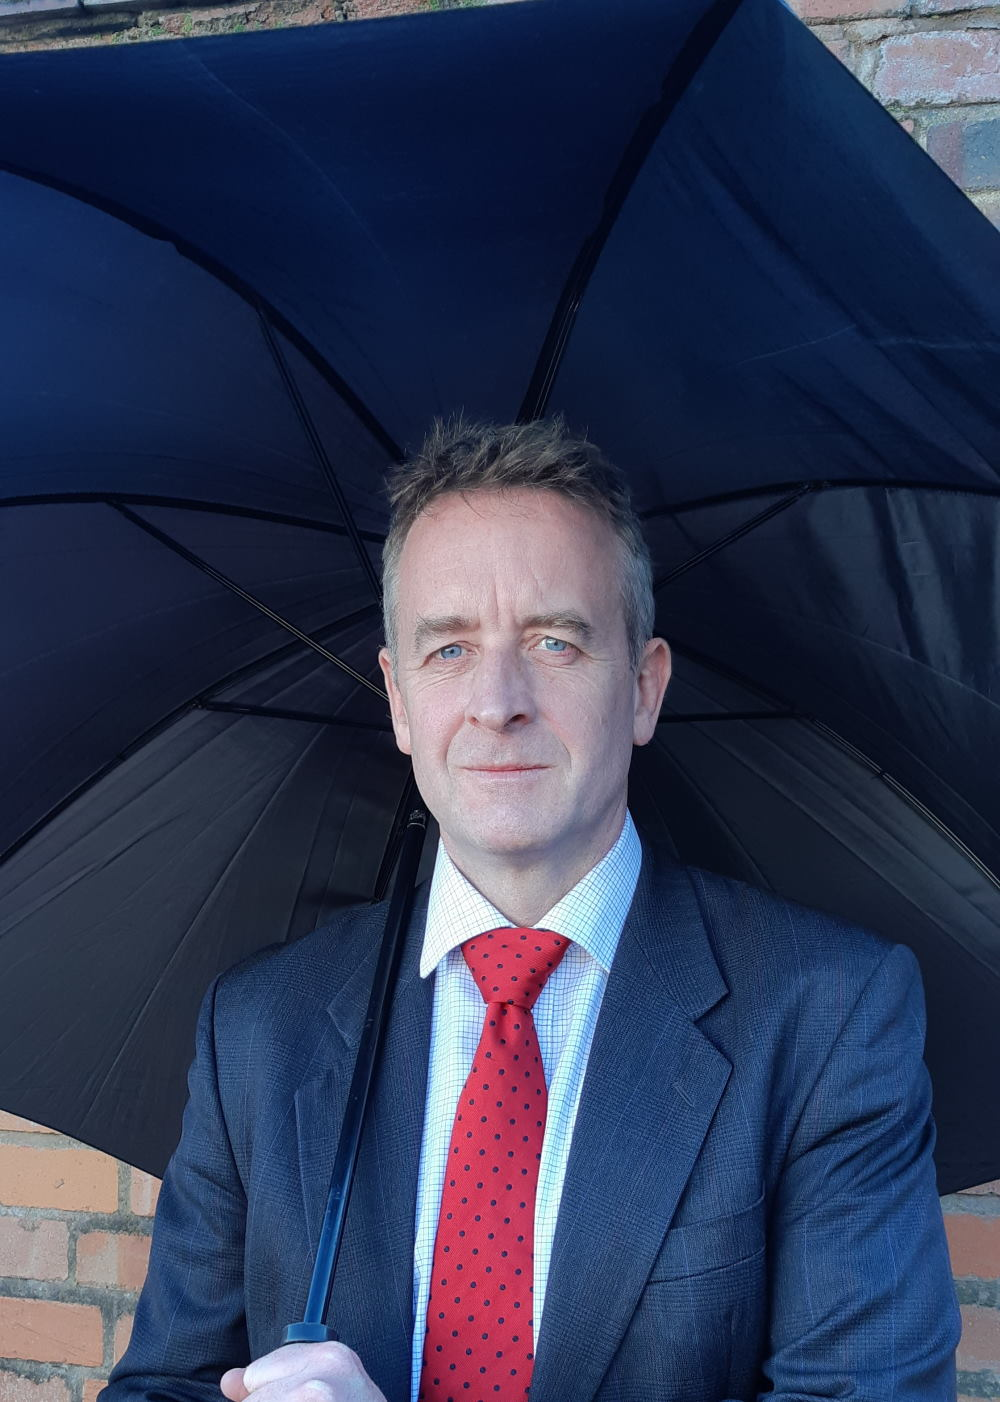 Duncan Sutcliffe under an umbrella